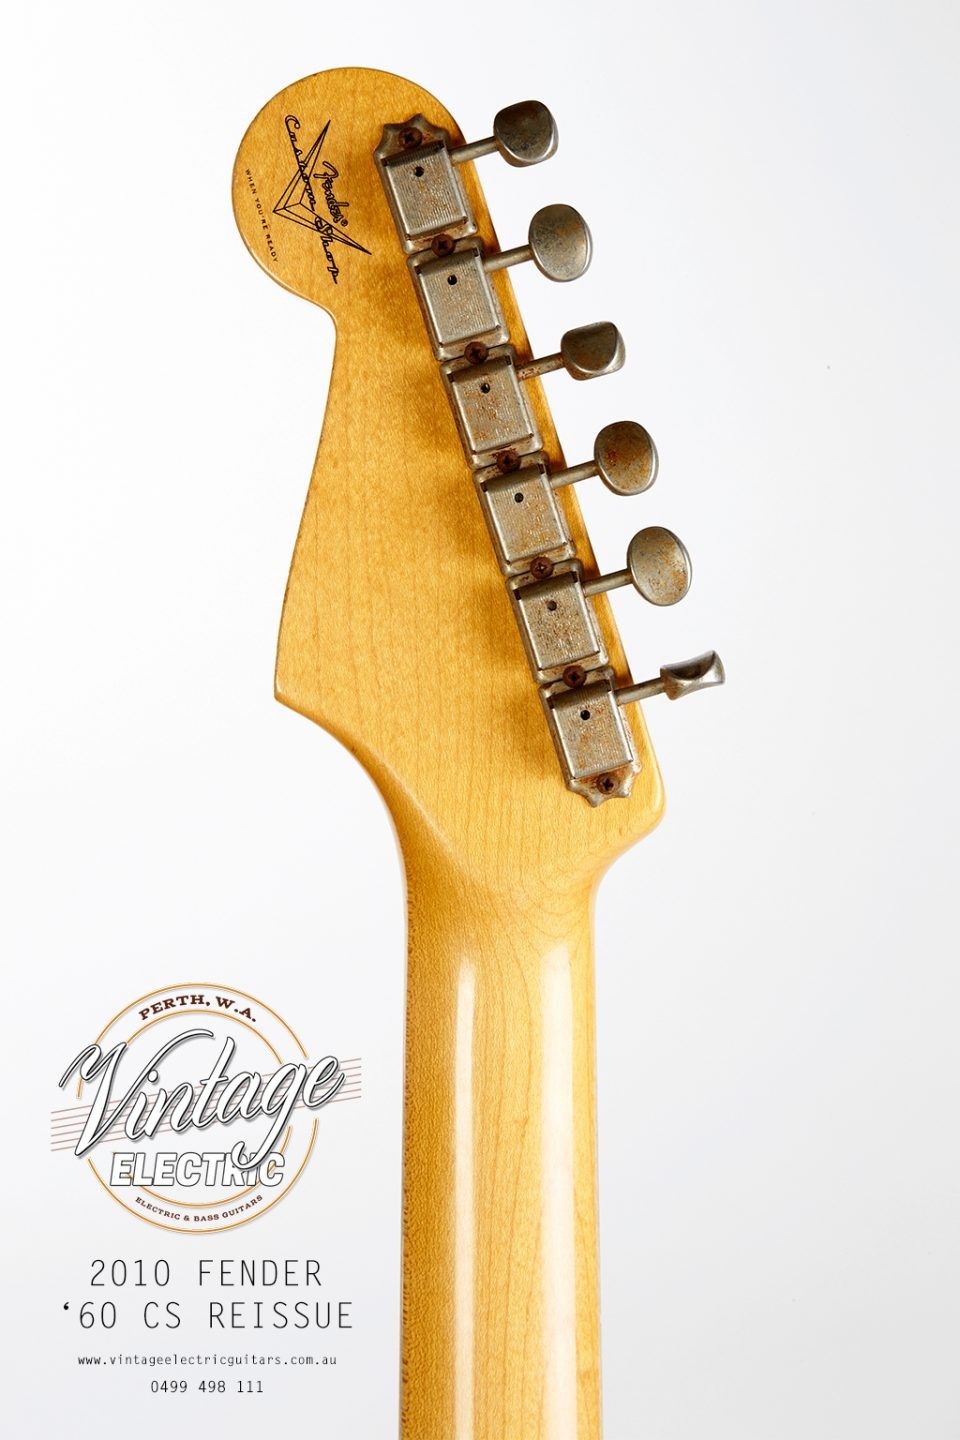 2010 Fender Stratocaster Back of Headstock